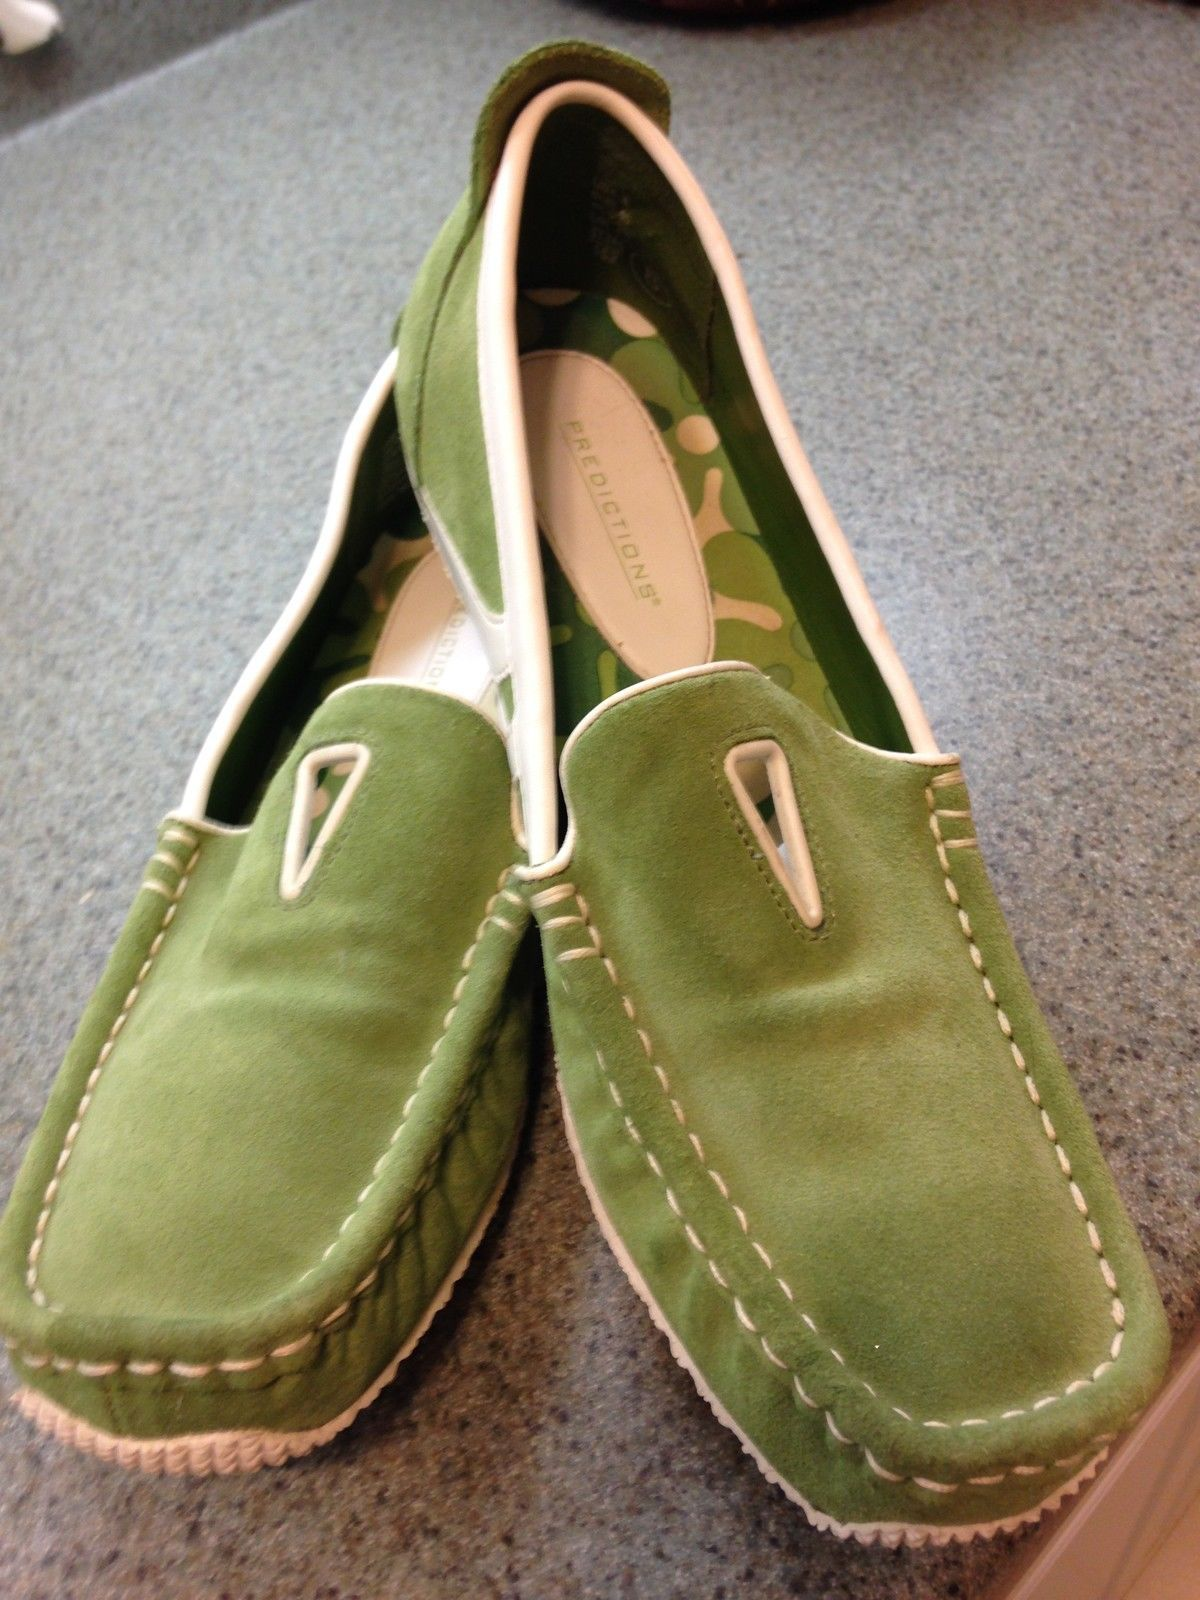 LIME GREEN SUEDE & WHITE LEATHER NWOT 'PREDICTIONS' 8 SLIP-ONS